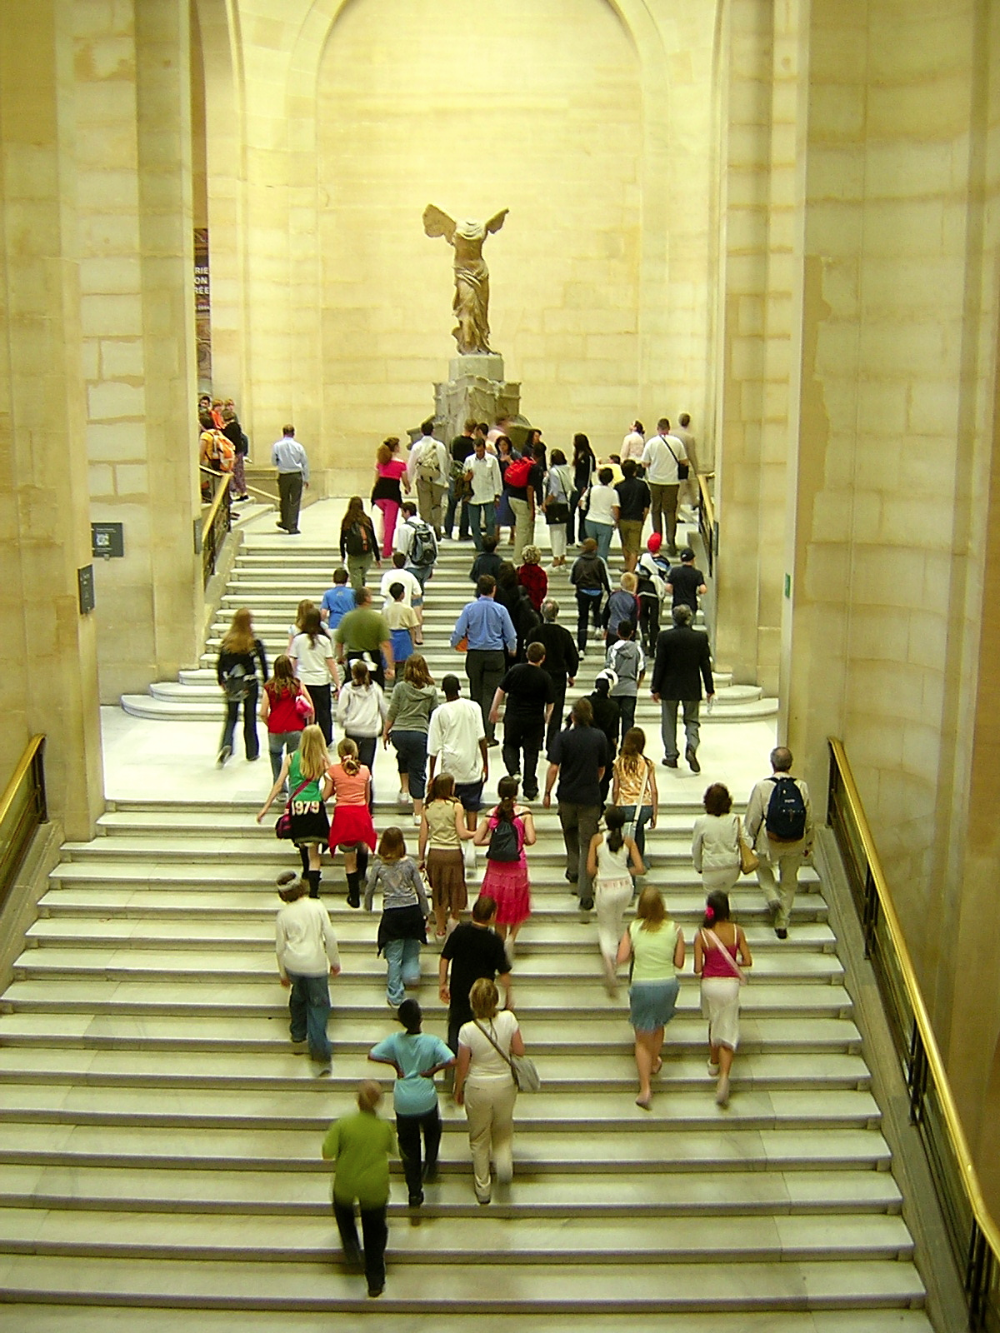 DISCOVER THE LOUVRE